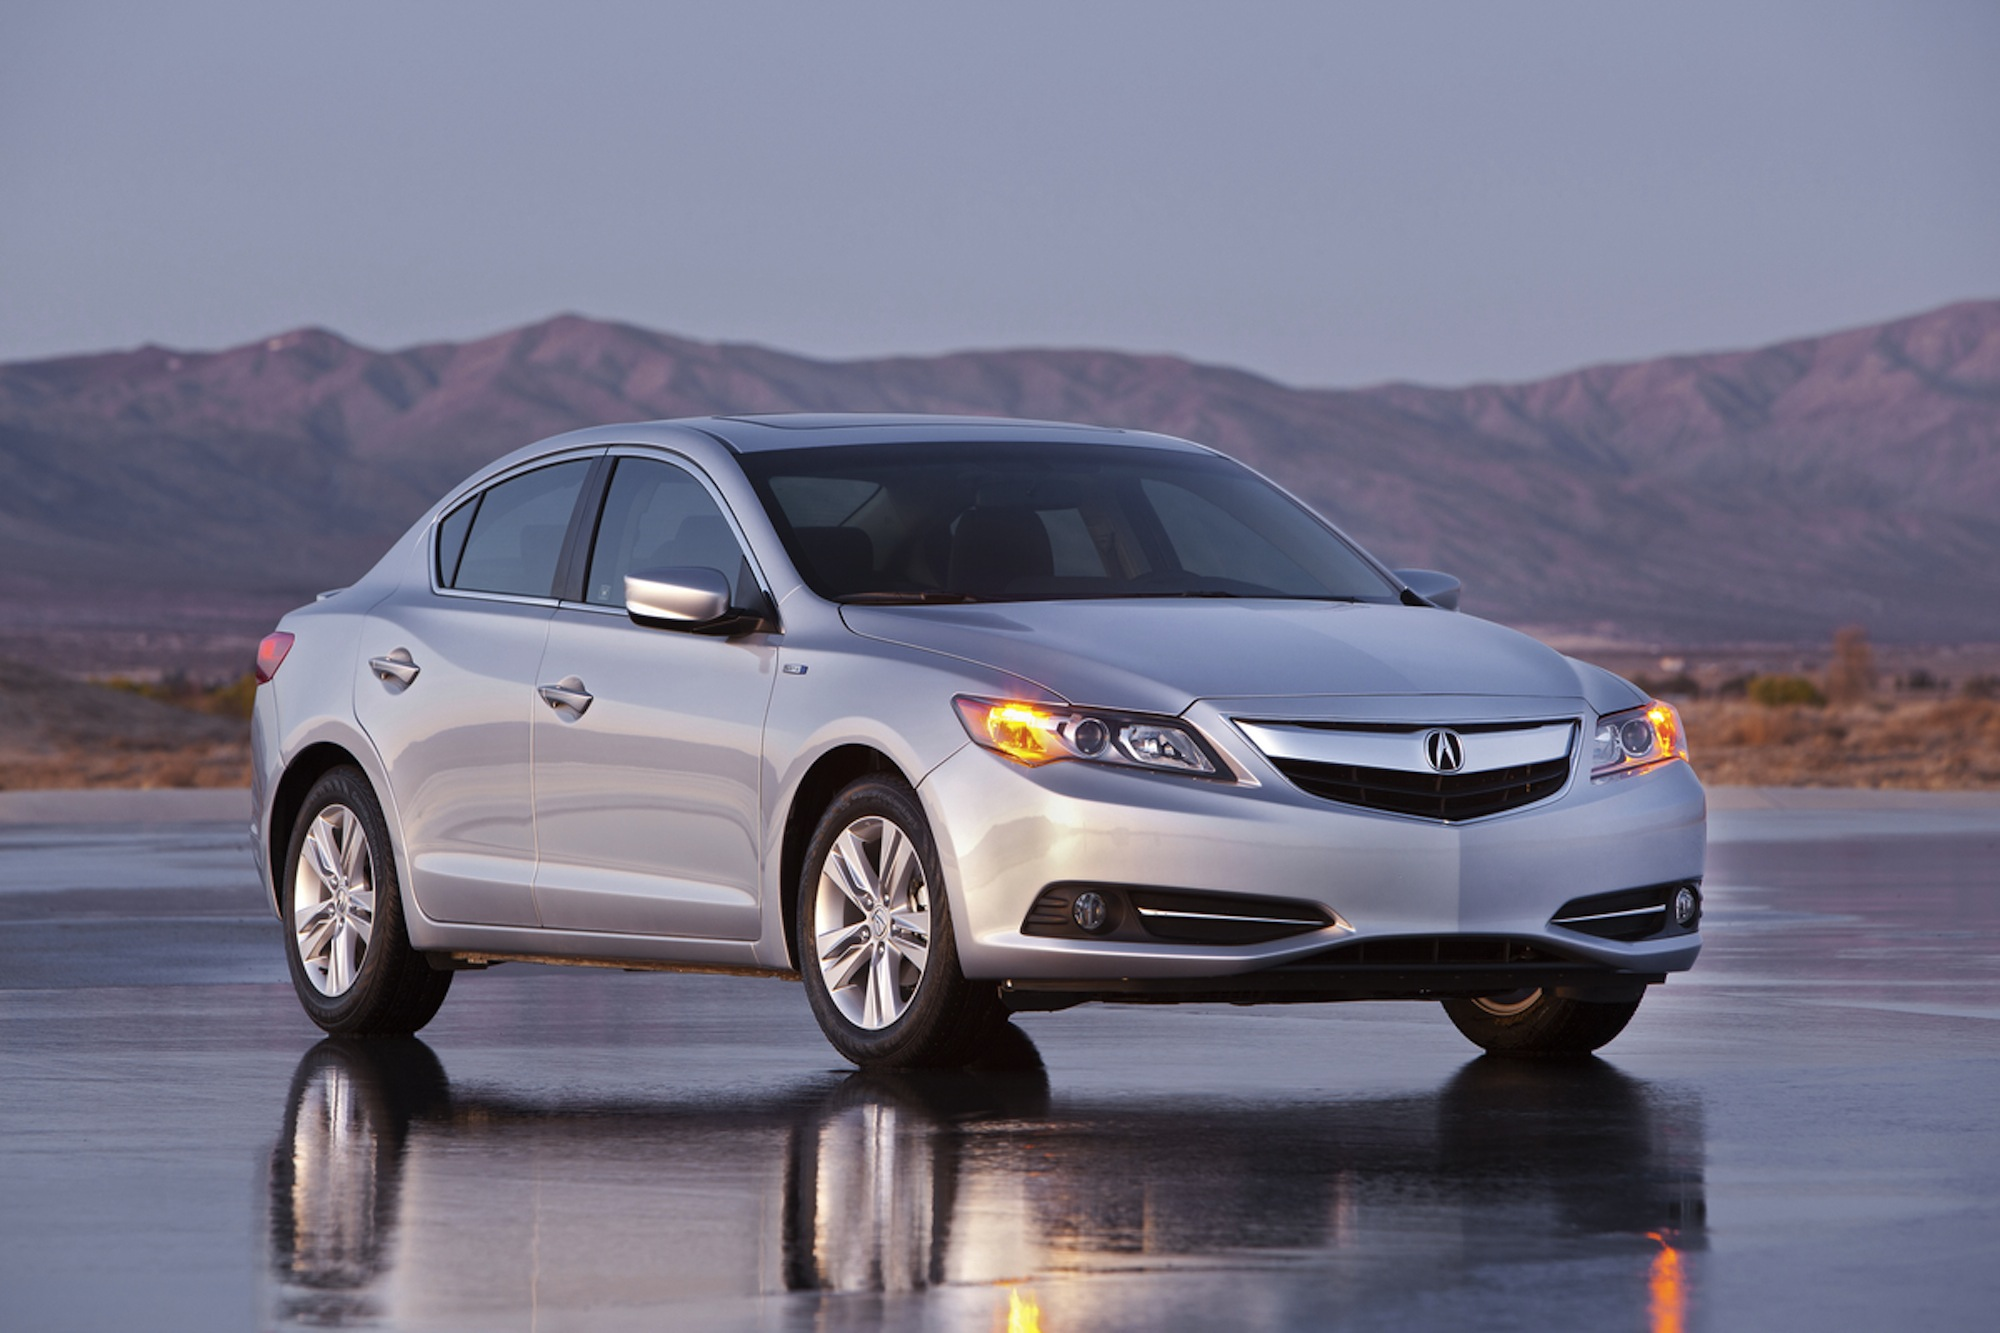 ilx mileage pin top cars hybrid on gas rear luxury acura best